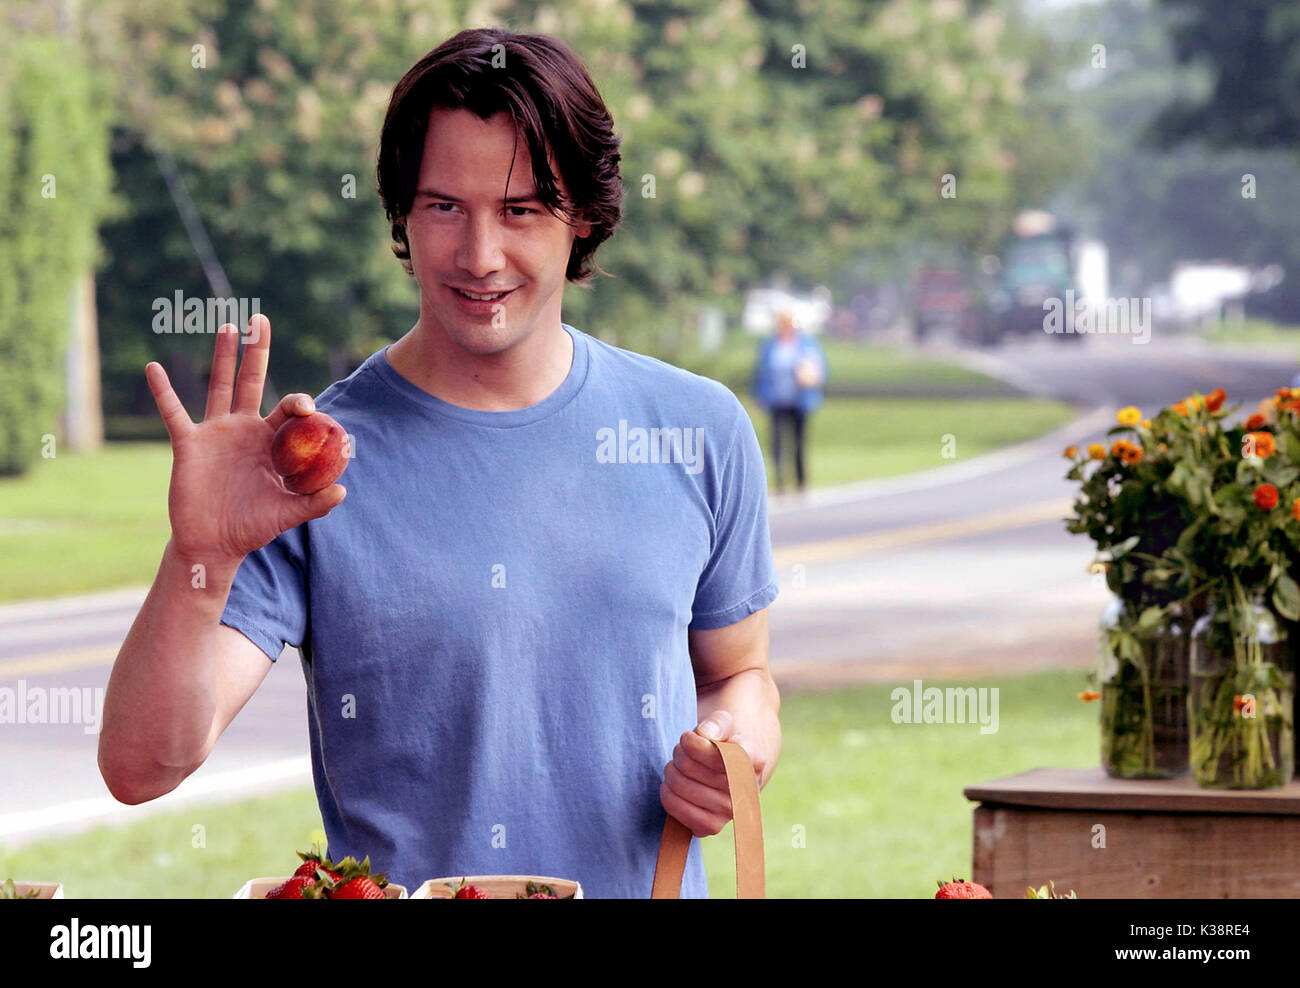 SOMETHING'S GOTTA GIVE [US 2003]  KEANU REEVES     Date: 2003 - Stock Image